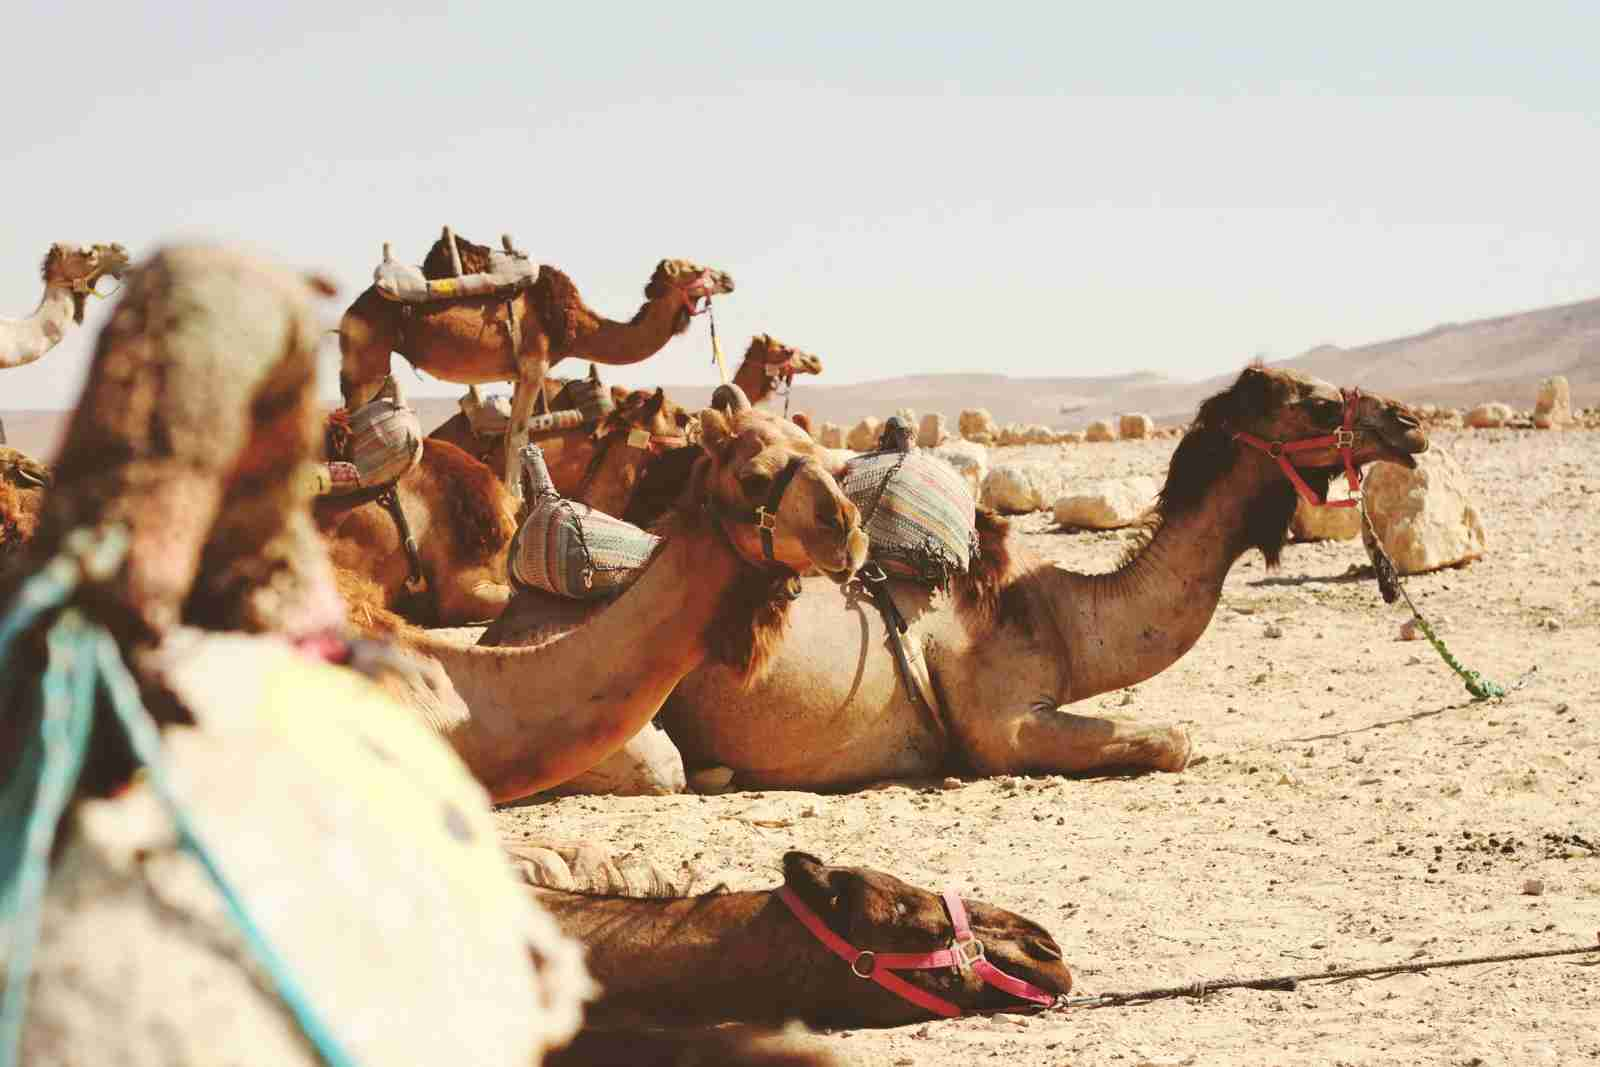 Camels in the Negev Desert. (Photo by James Ballard/Unsplash)